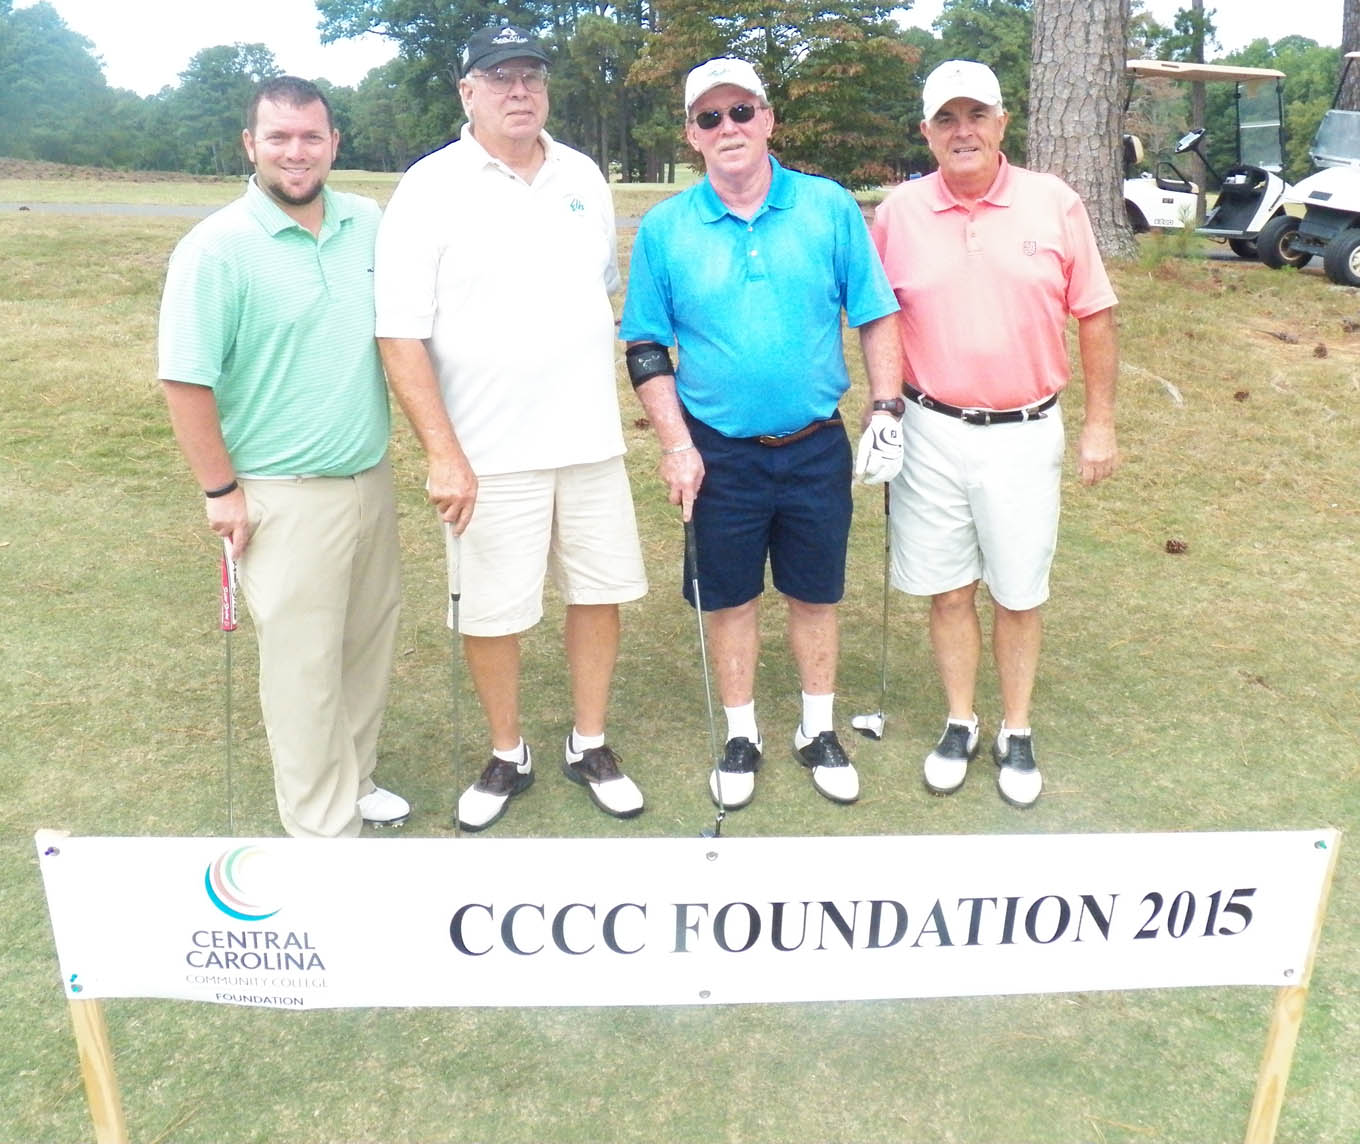 Click to enlarge,  The team of Brandon Honeycutt, Tom Gordon, Roy Eubanks, and Mike Large won the first flight of the afternoon tournament of the CCCC Foundation Lee Golf Classic.